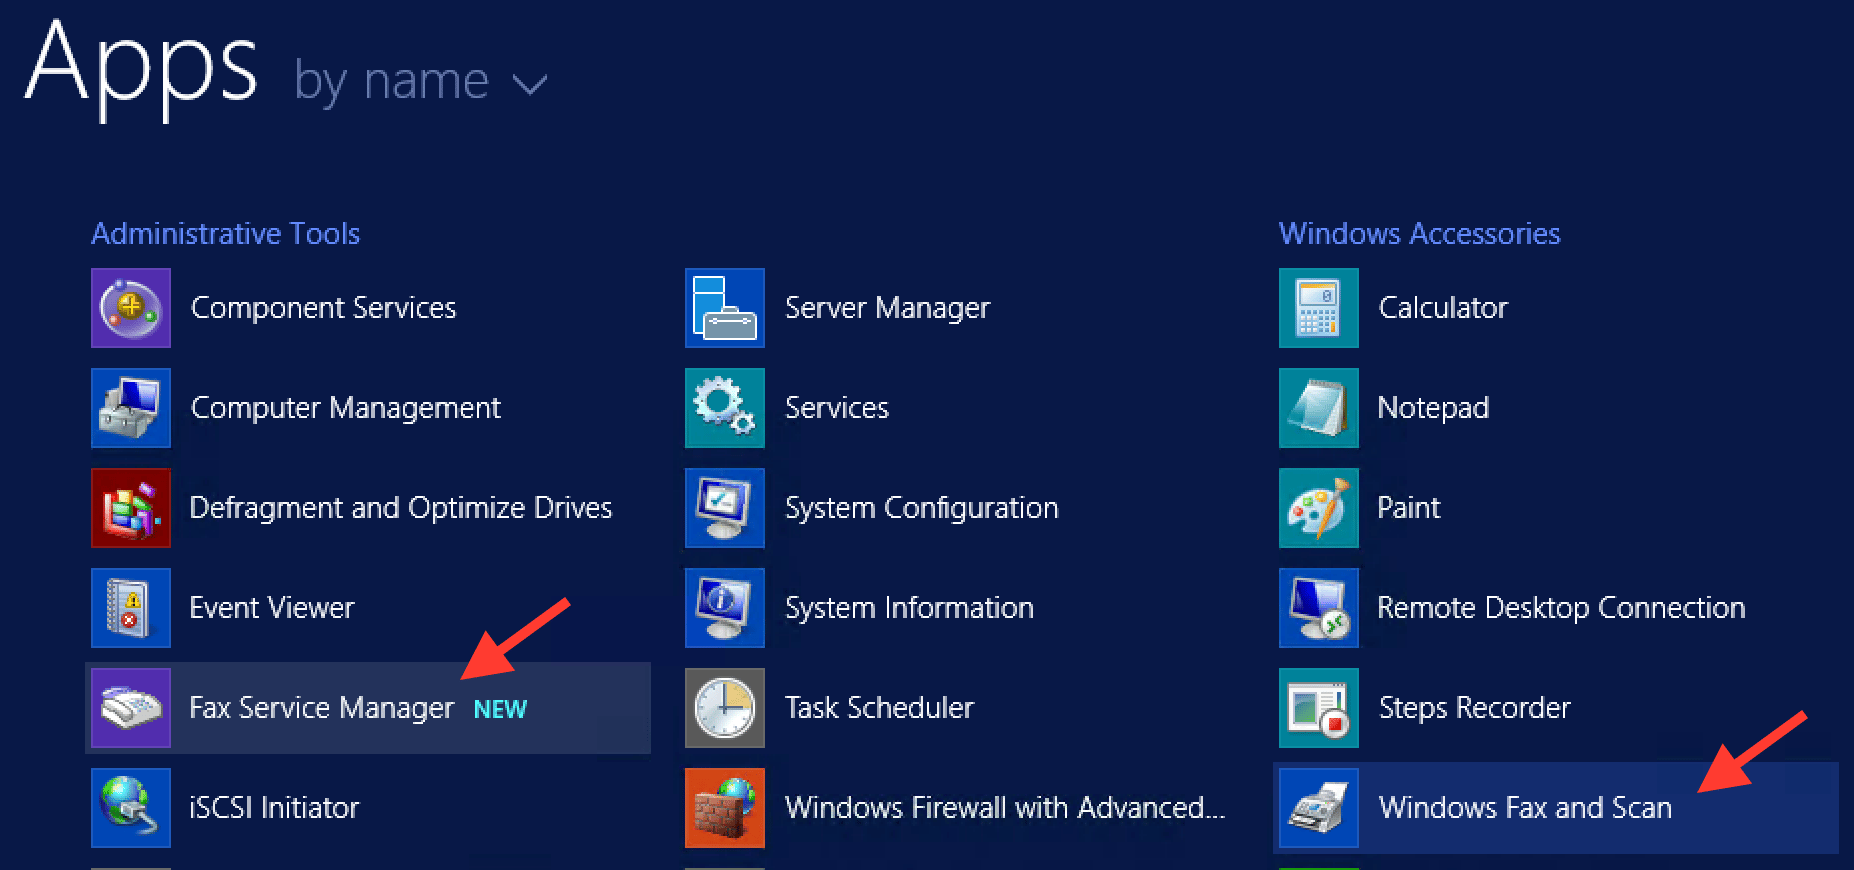 """The """"Fax Service Manager"""" and """"Windows Fax and Scan"""" applications"""